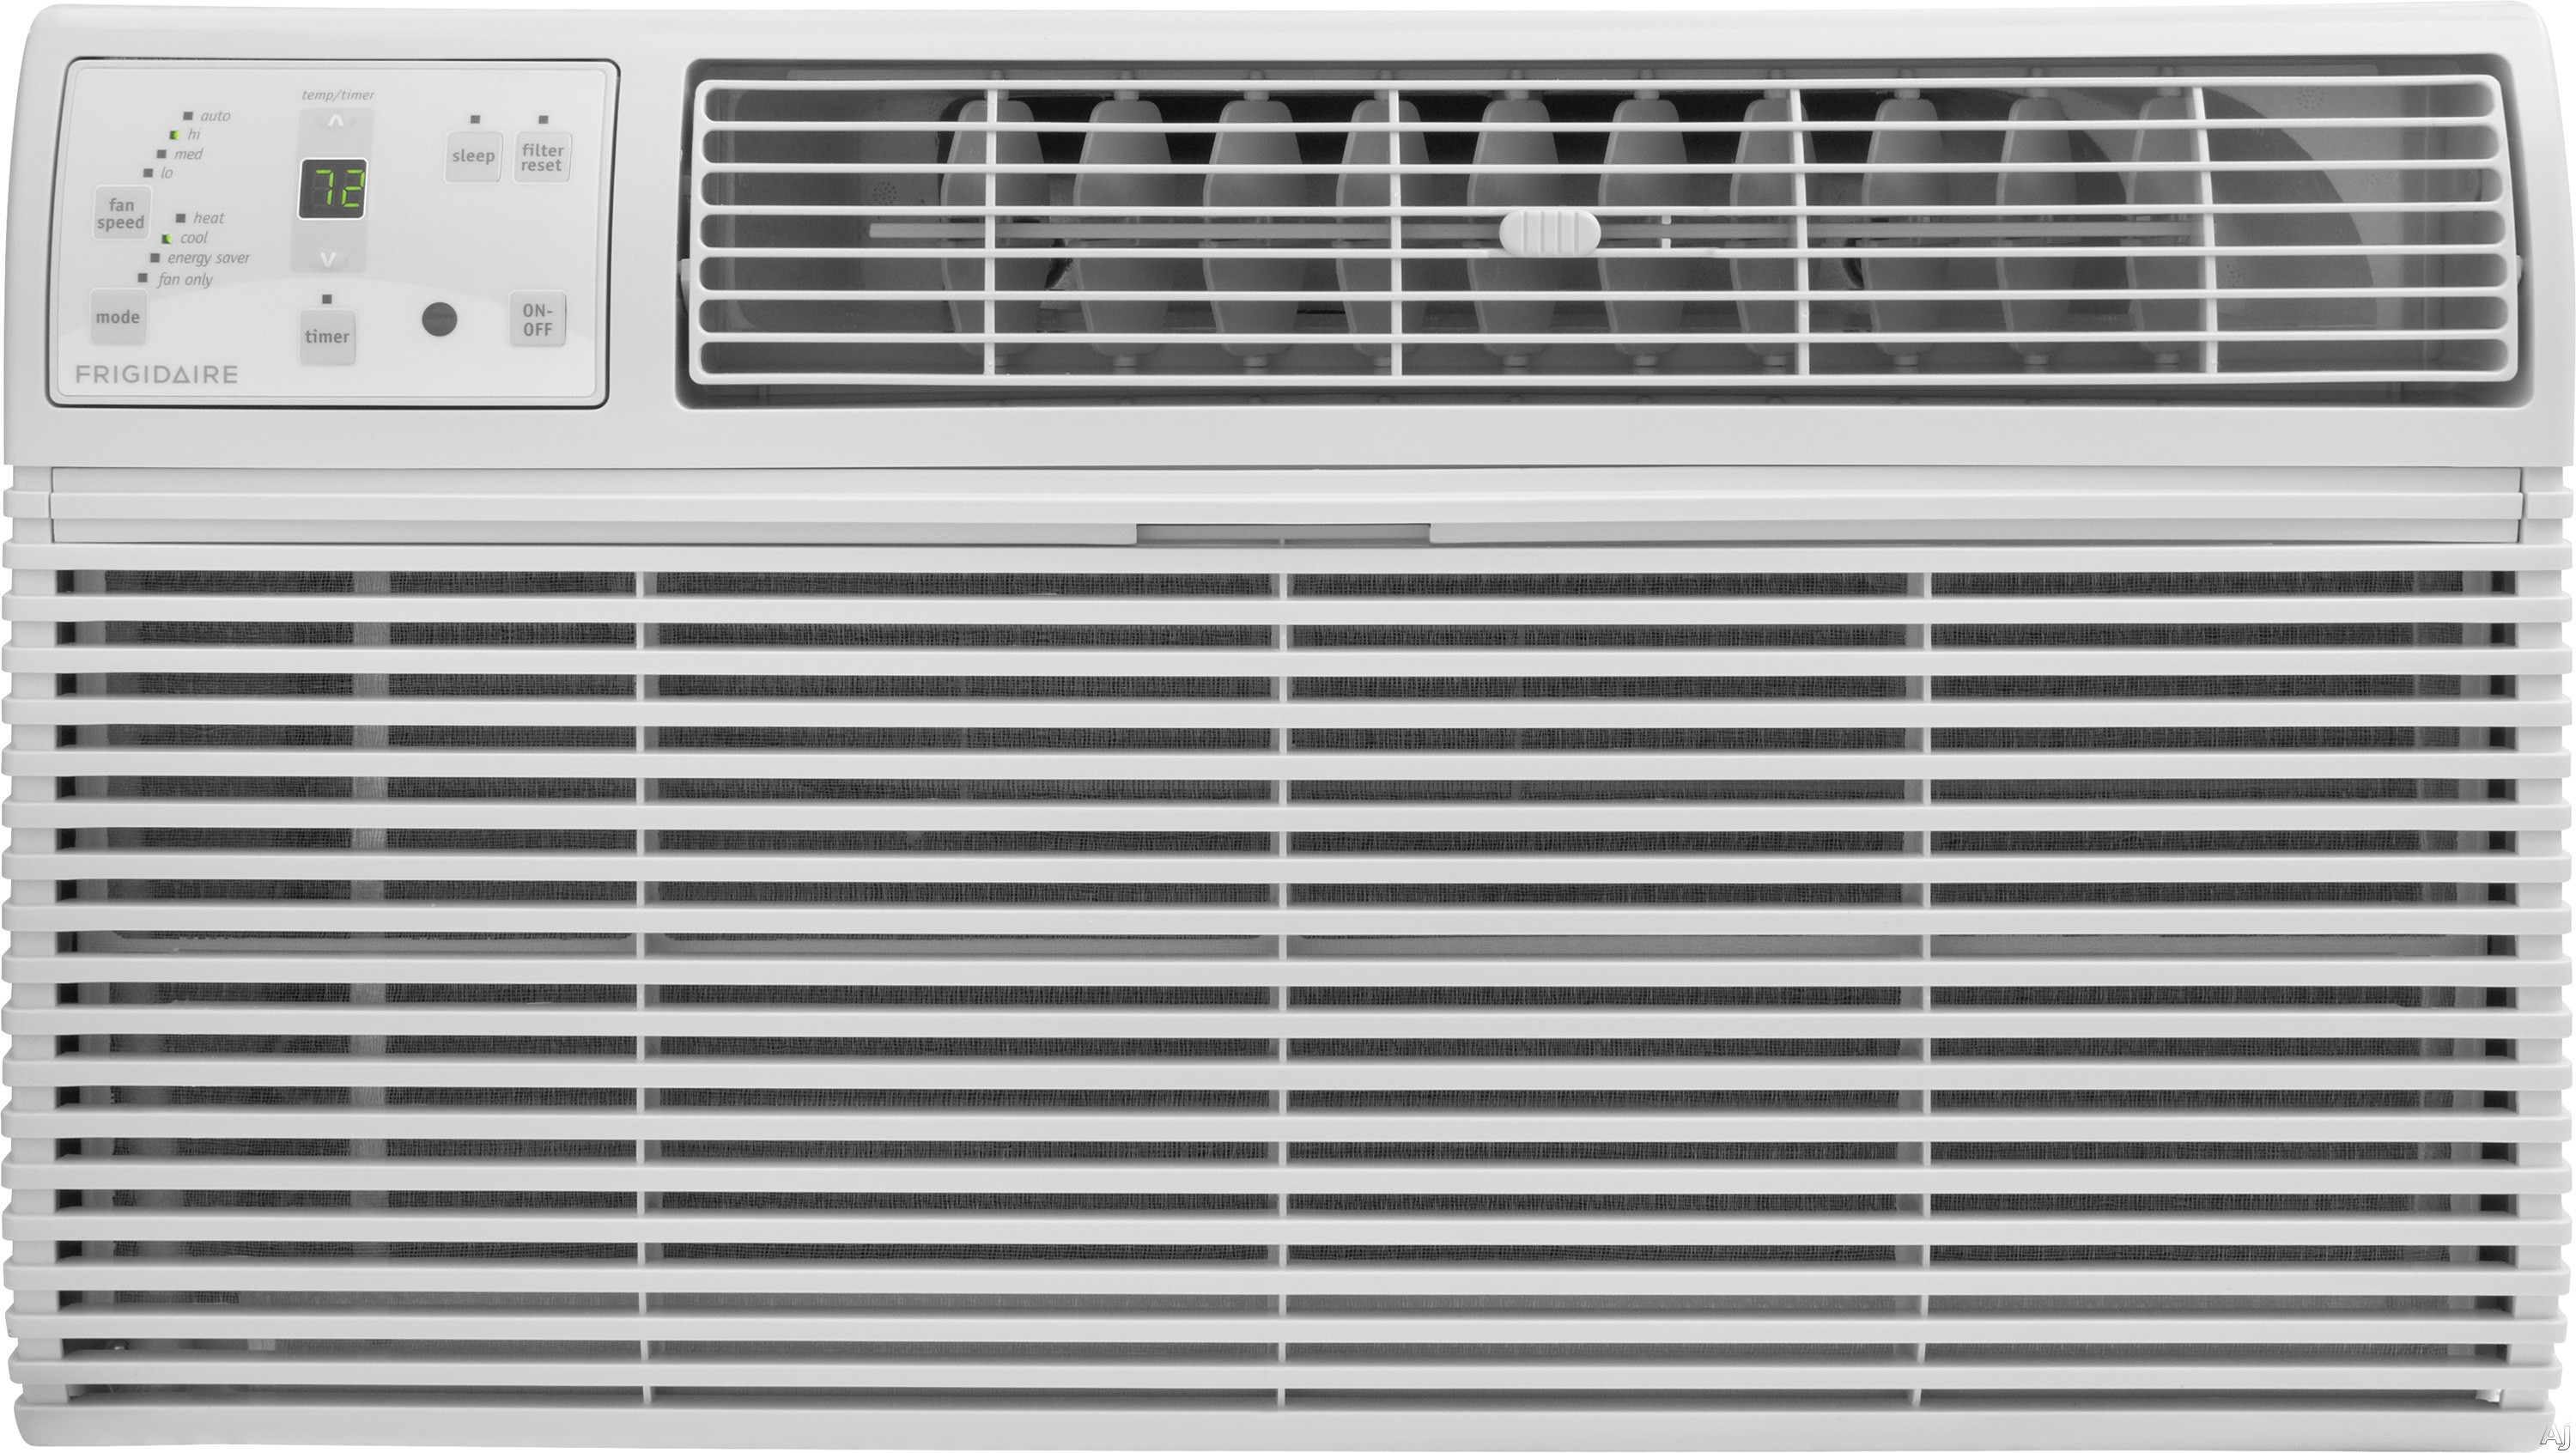 Frigidaire FFTH0822R1 8,000 BTU Thru-the-Wall Air Conditioner with 4,200 BTU Electric Heat, 9.6 EER, R-410A Refrigerant, 1.8 Pts/Hr Dehumidification, Energy Saver and Remote Control FFTH0822R1